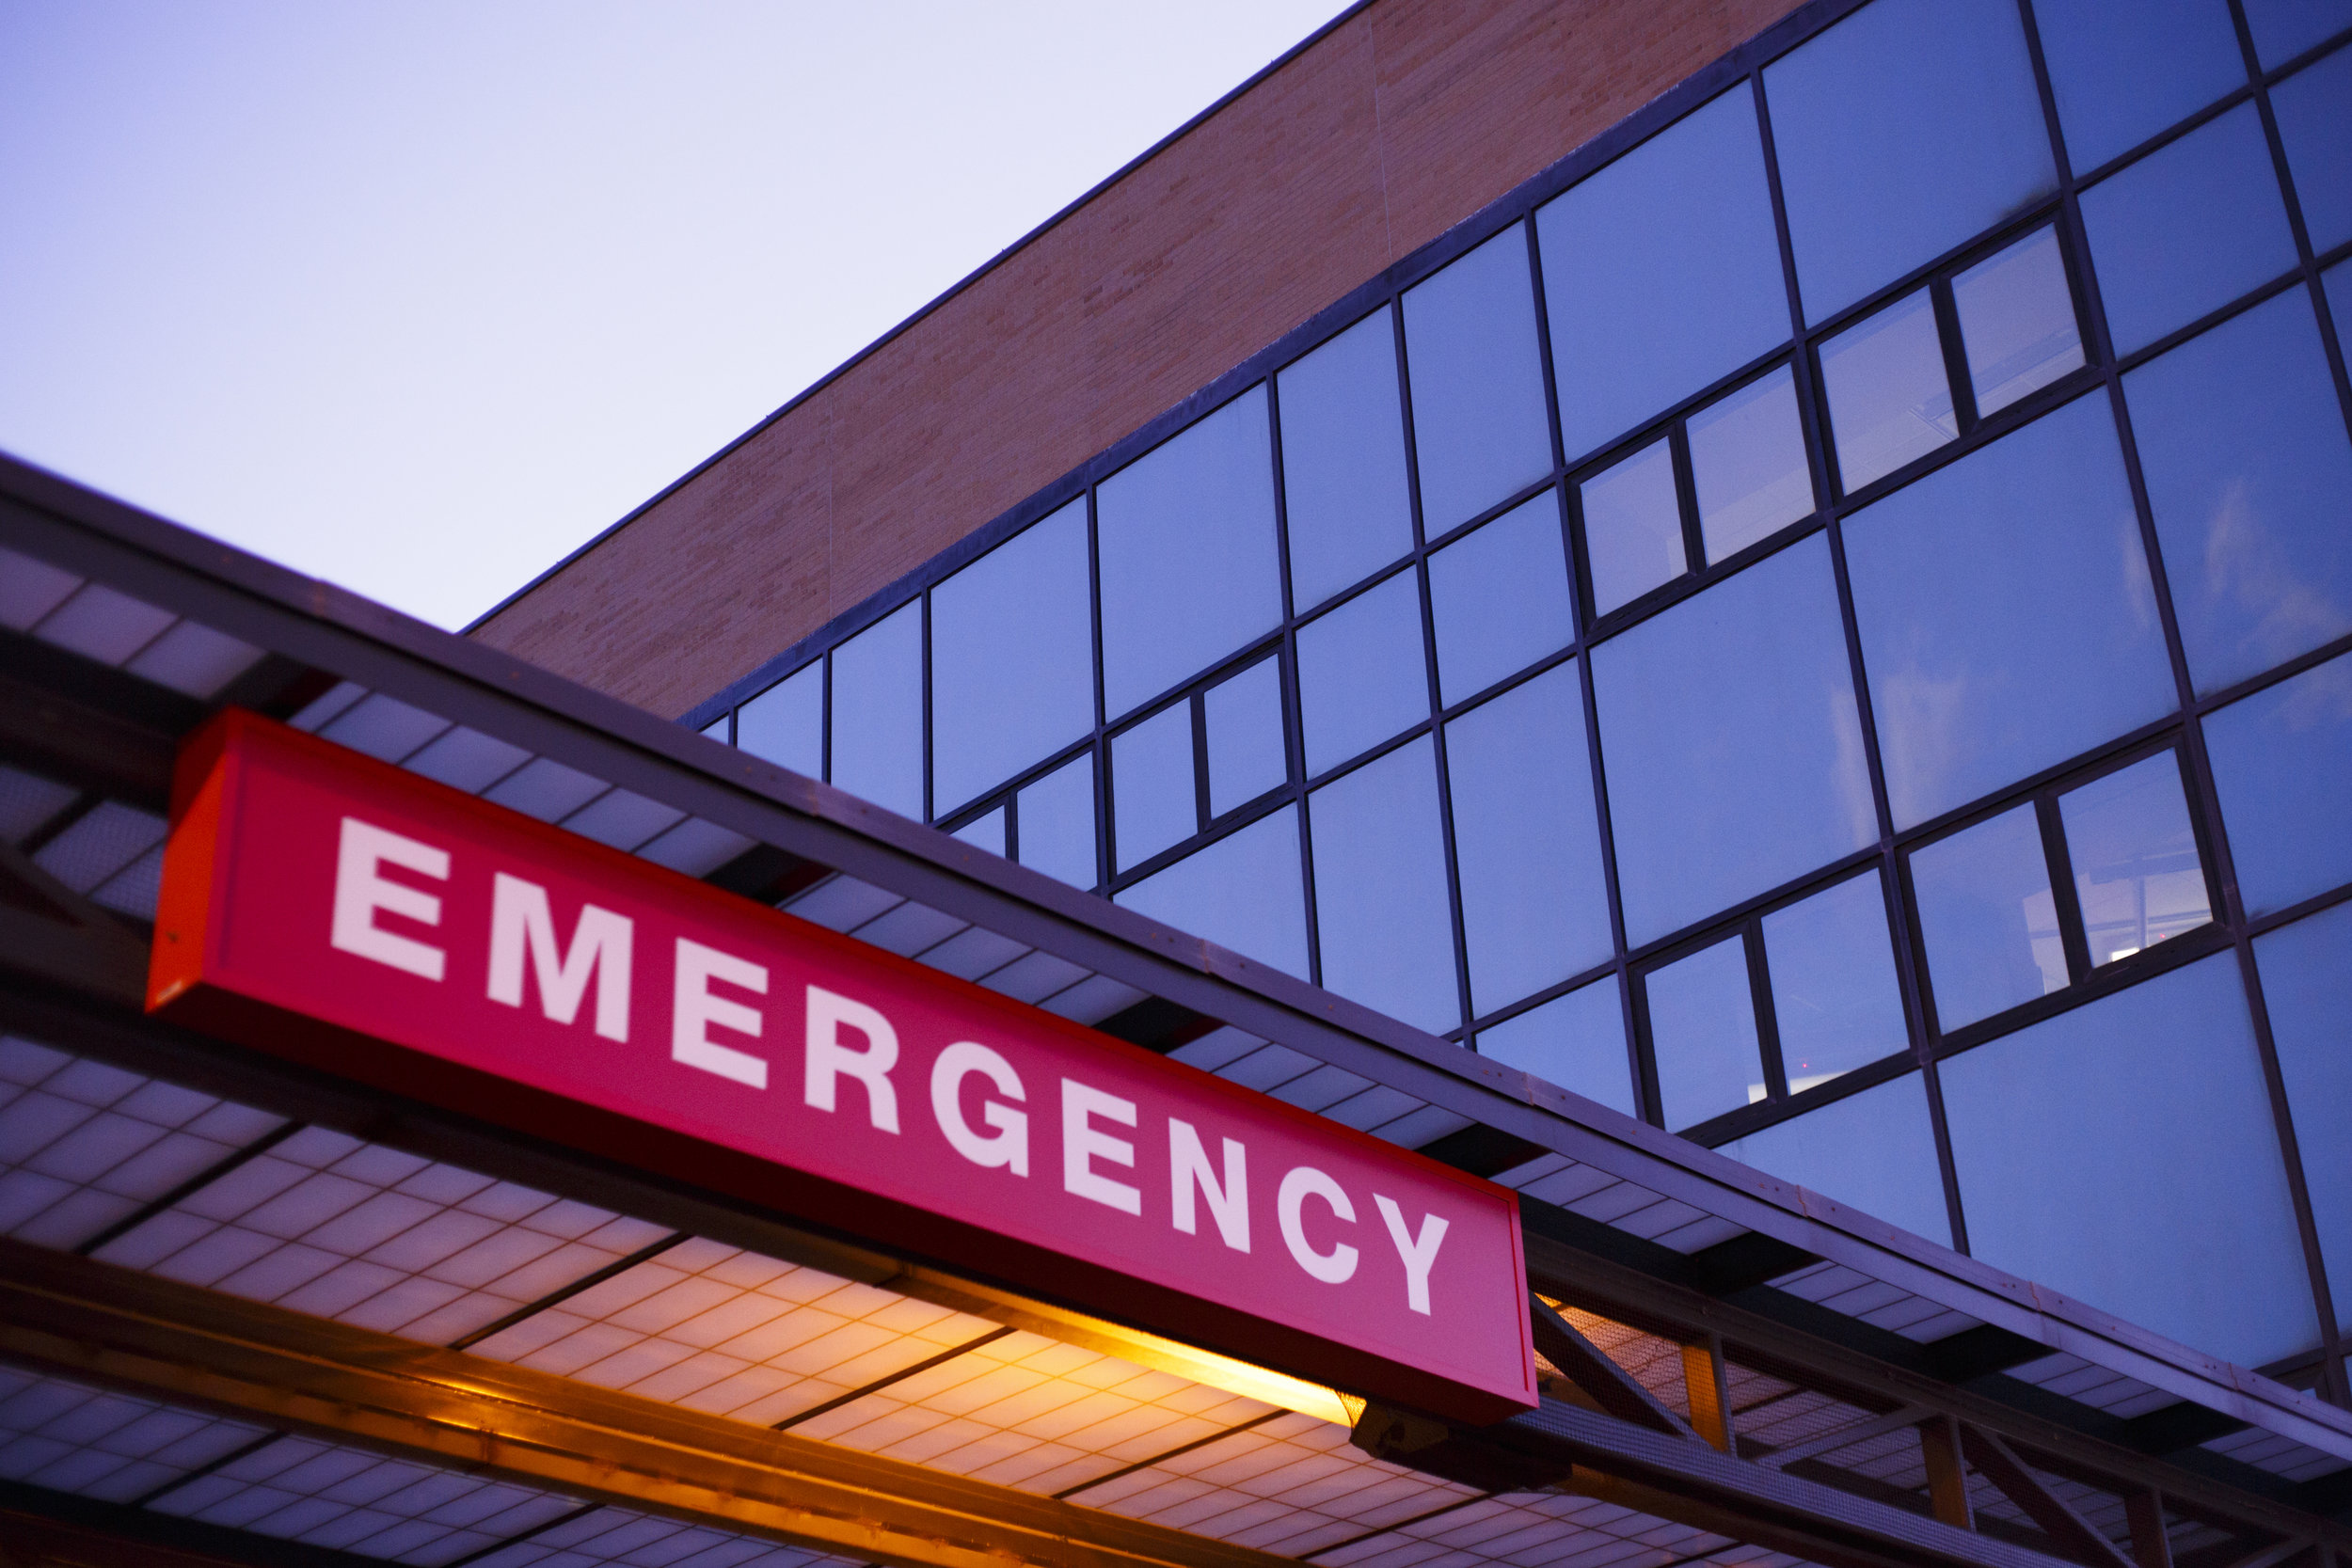 What We Do - Colorado's Northwest Region Healthcare Coalition's (NWRHCC) mission is to coordinate and conduct healthcare emergency preparedness activities throughout the following Northwest Colorado counties: Mesa, Garfield, Pitkin, Eagle, Summit, Grand, Jackson, Routt, Moffat, and Rio Blanco.